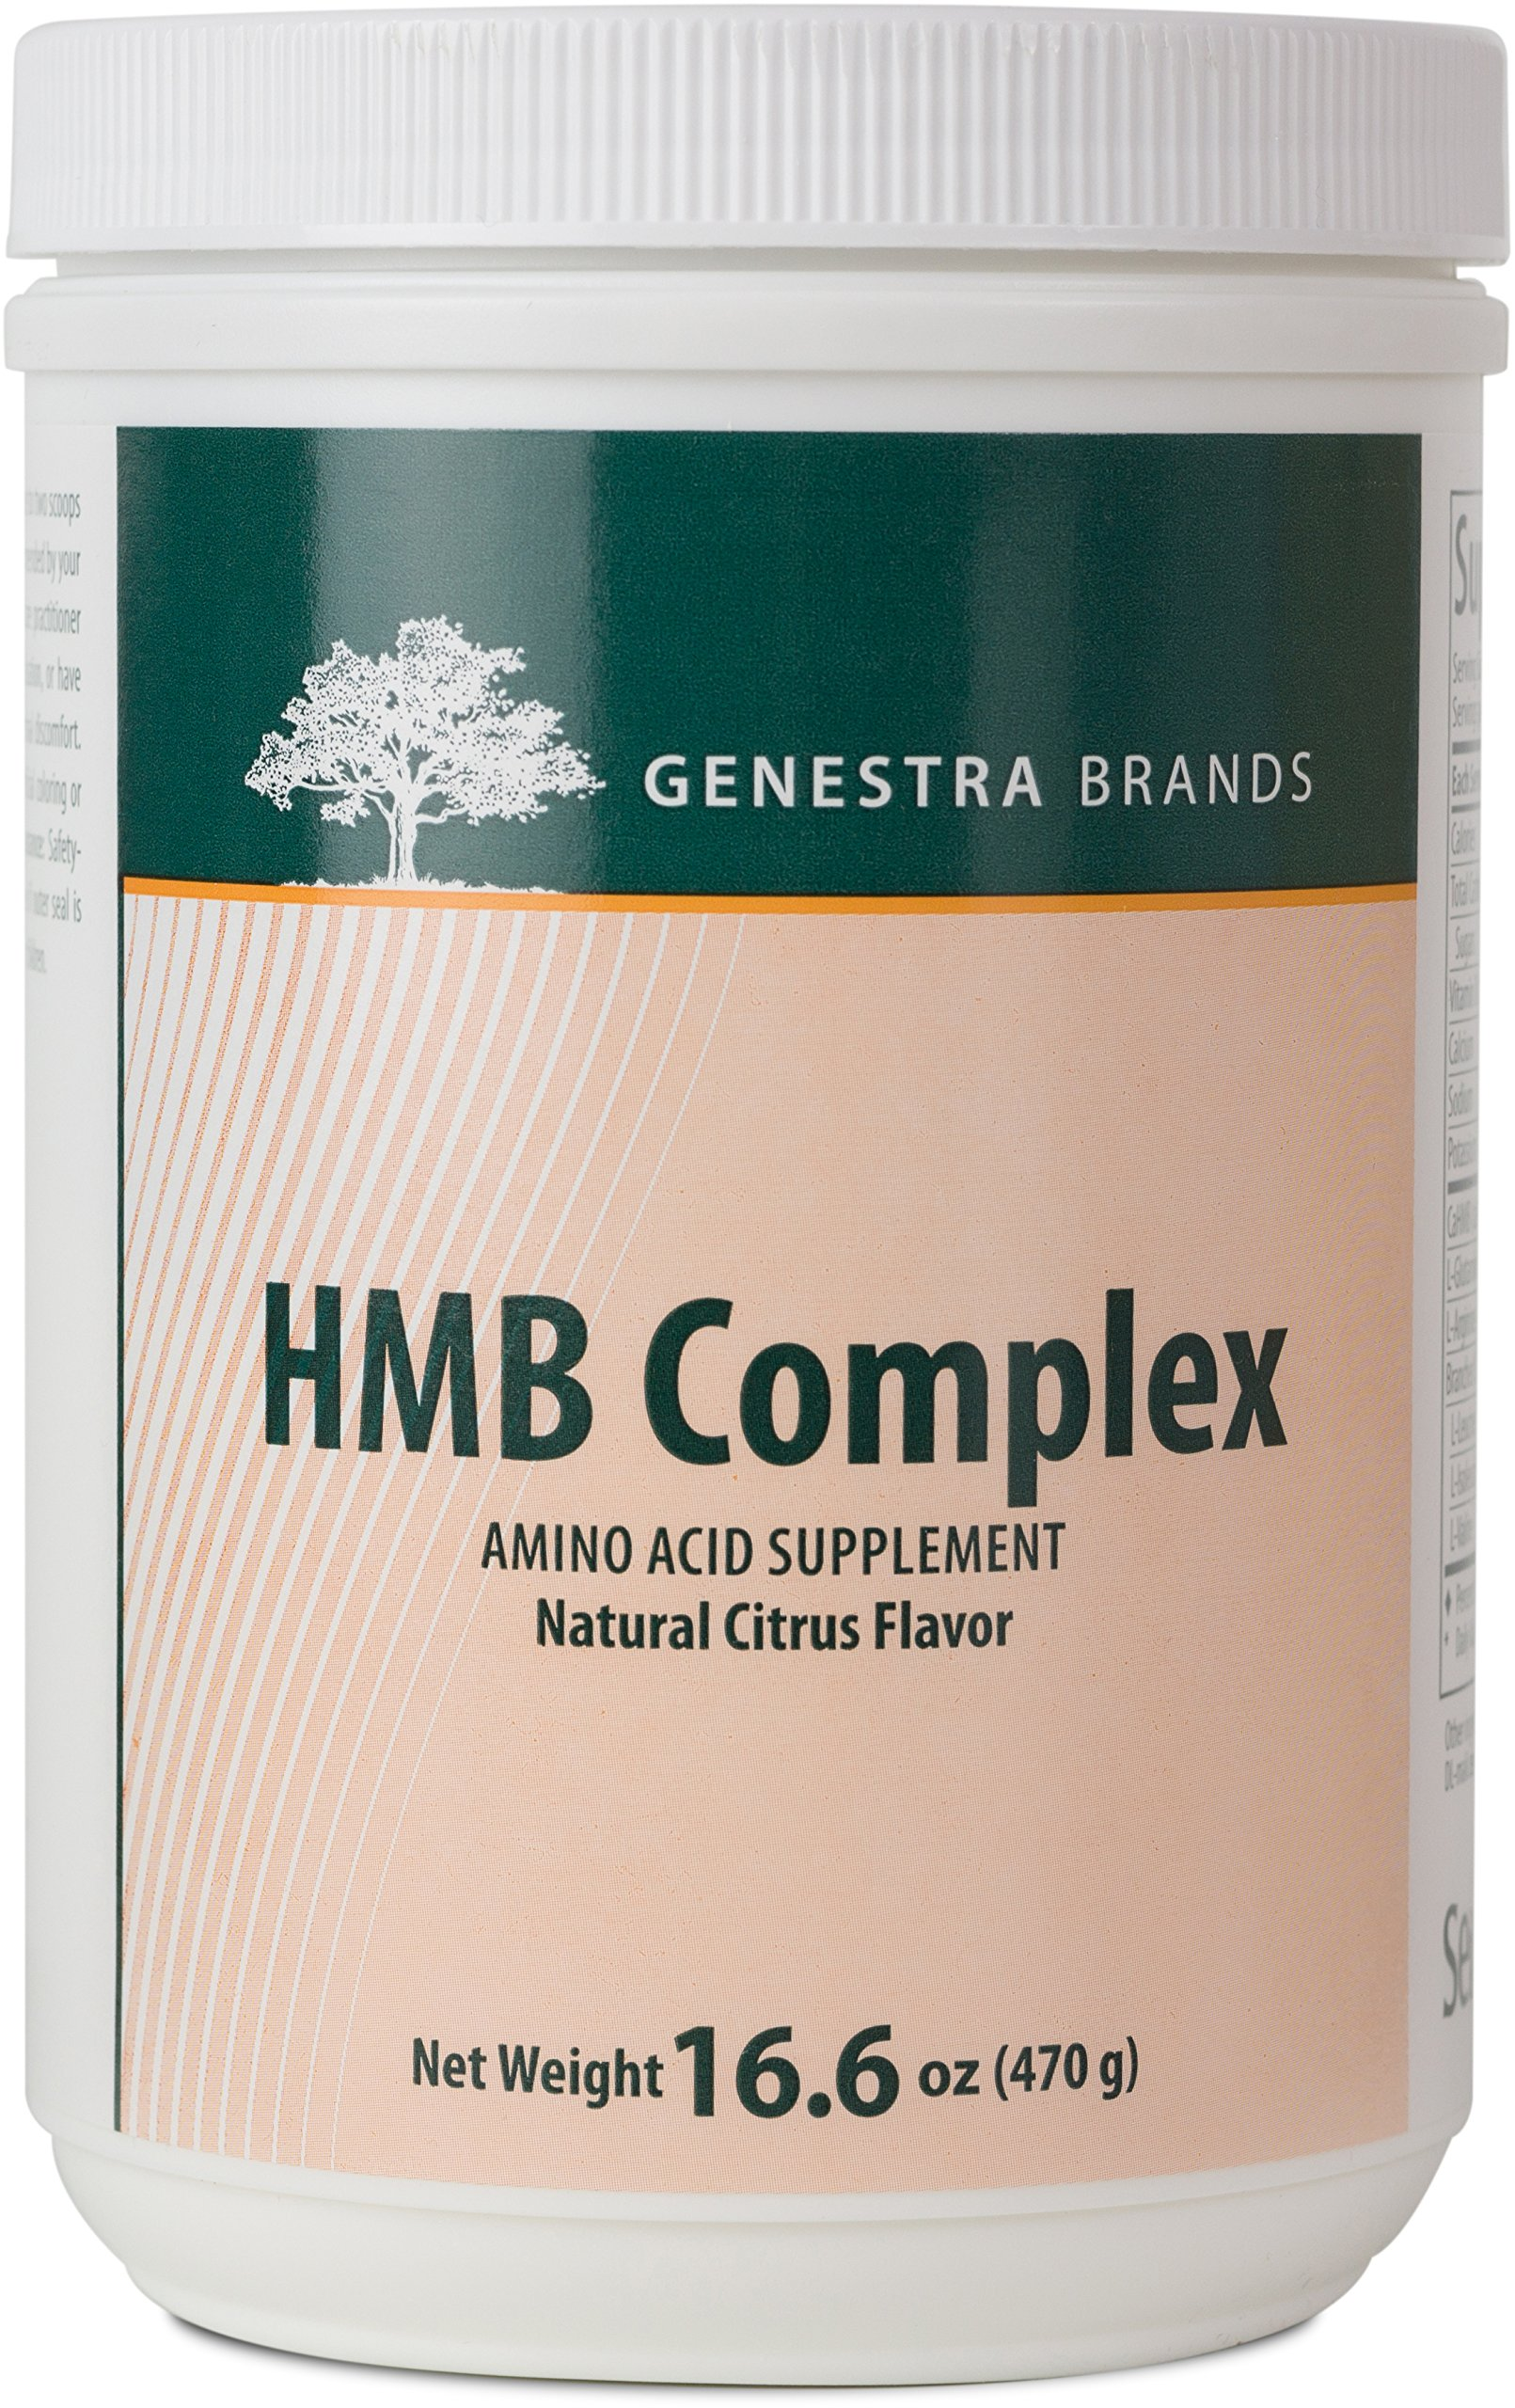 Genestra Brands - HMB Complex - Vegetarian Amino Acid Powder Supplement - Natural Orange Flavor - 16.6 oz (470 g)